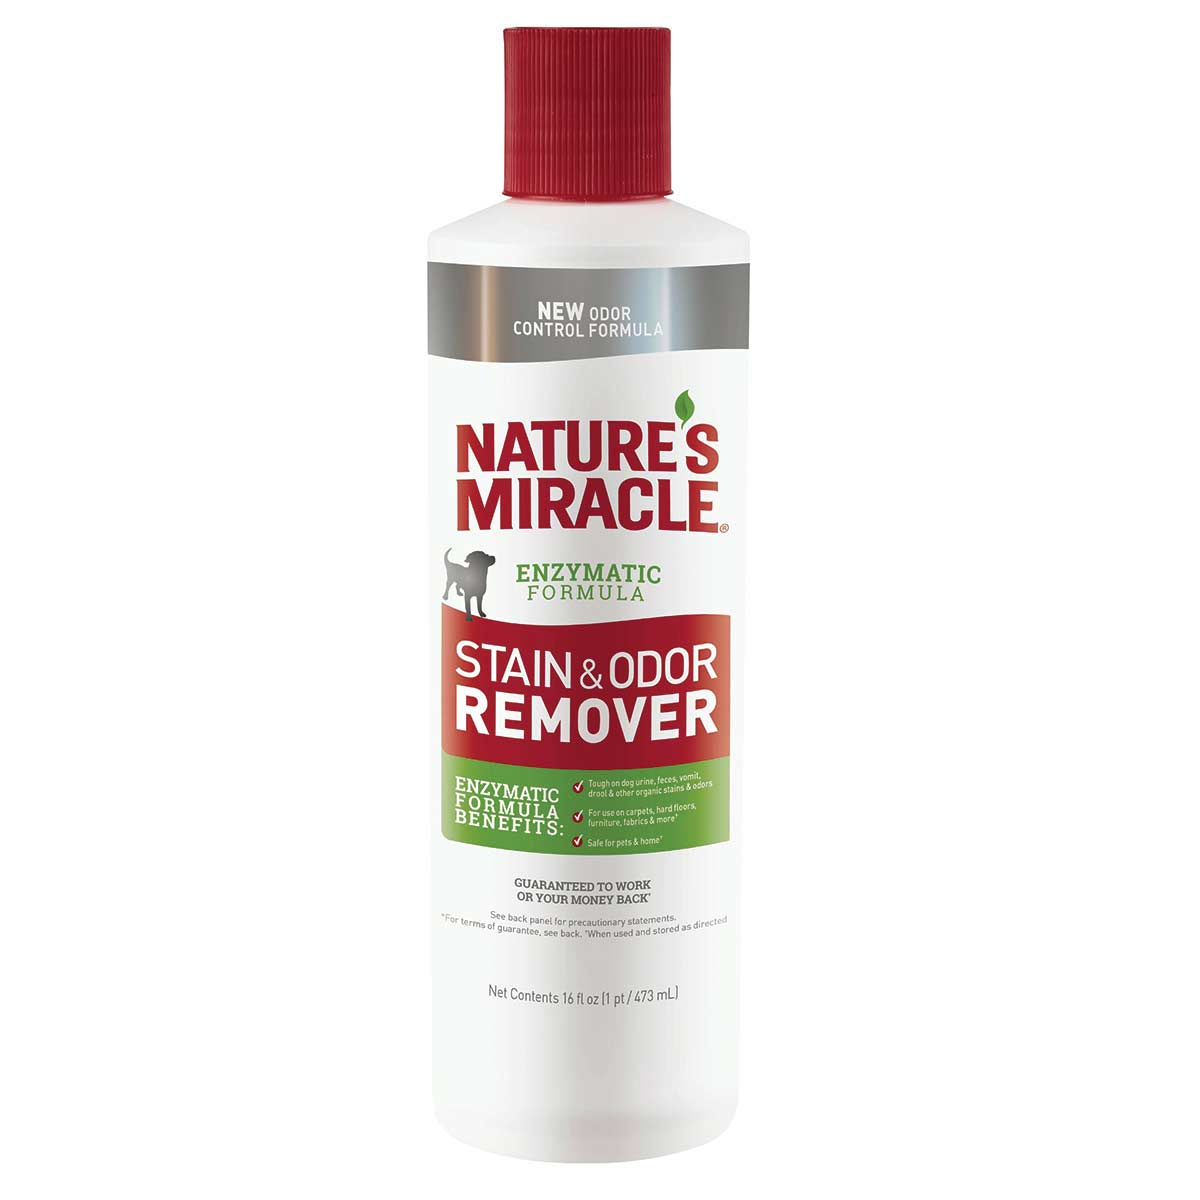 Nature's Miracle Stain and Odor Remover for House 16 oz